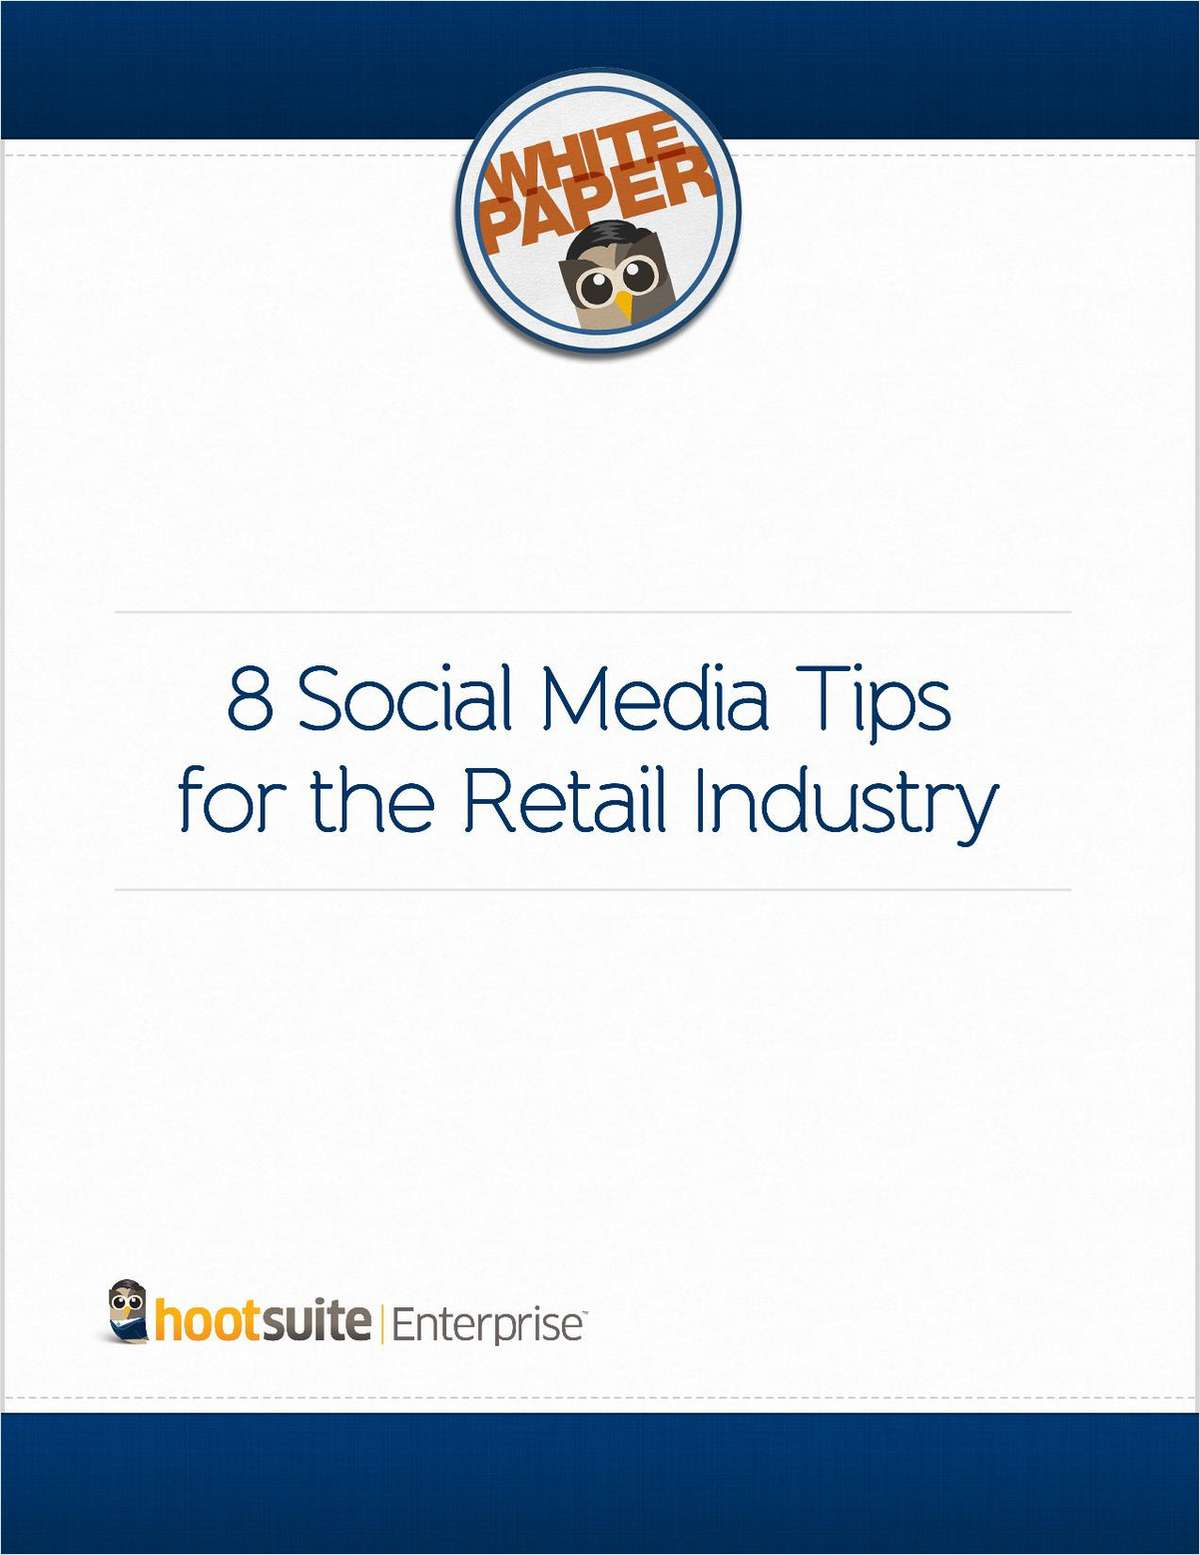 8 Social Media Tips for the Retail Industry